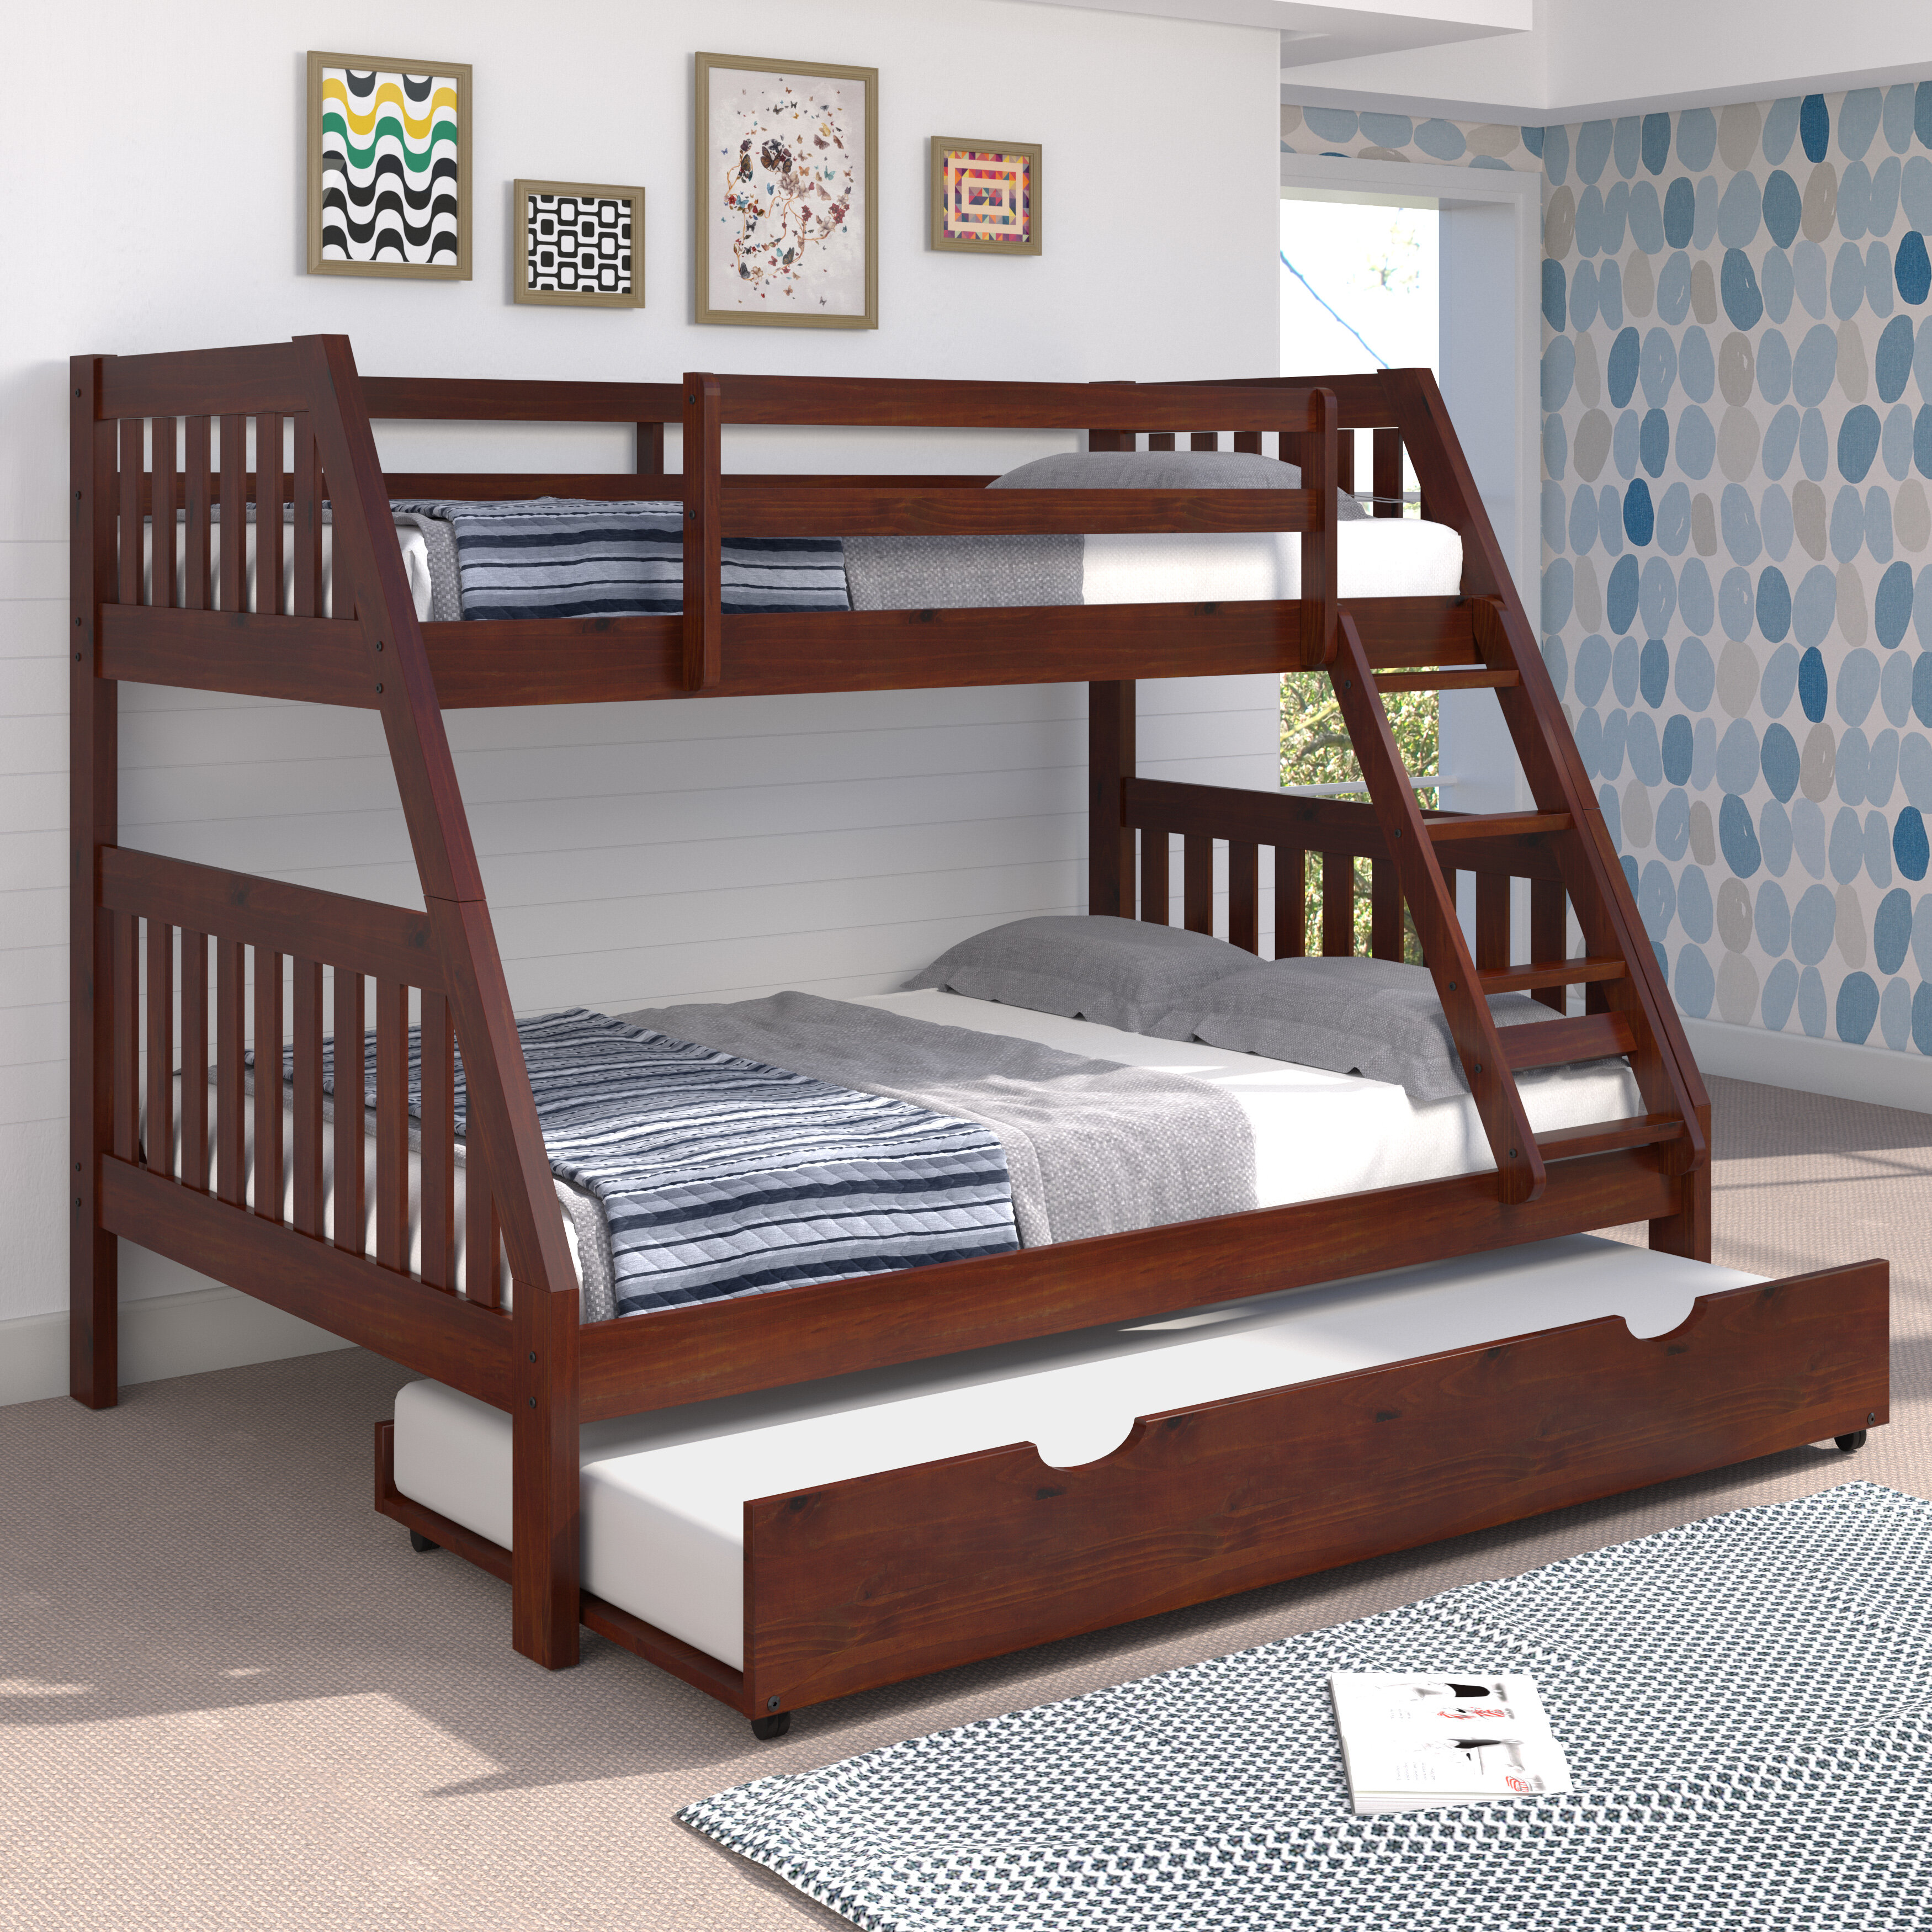 Chelsea Home Mission Twin Over Full Bunk Bed With Trundle And Ladder Reviews Wayfair